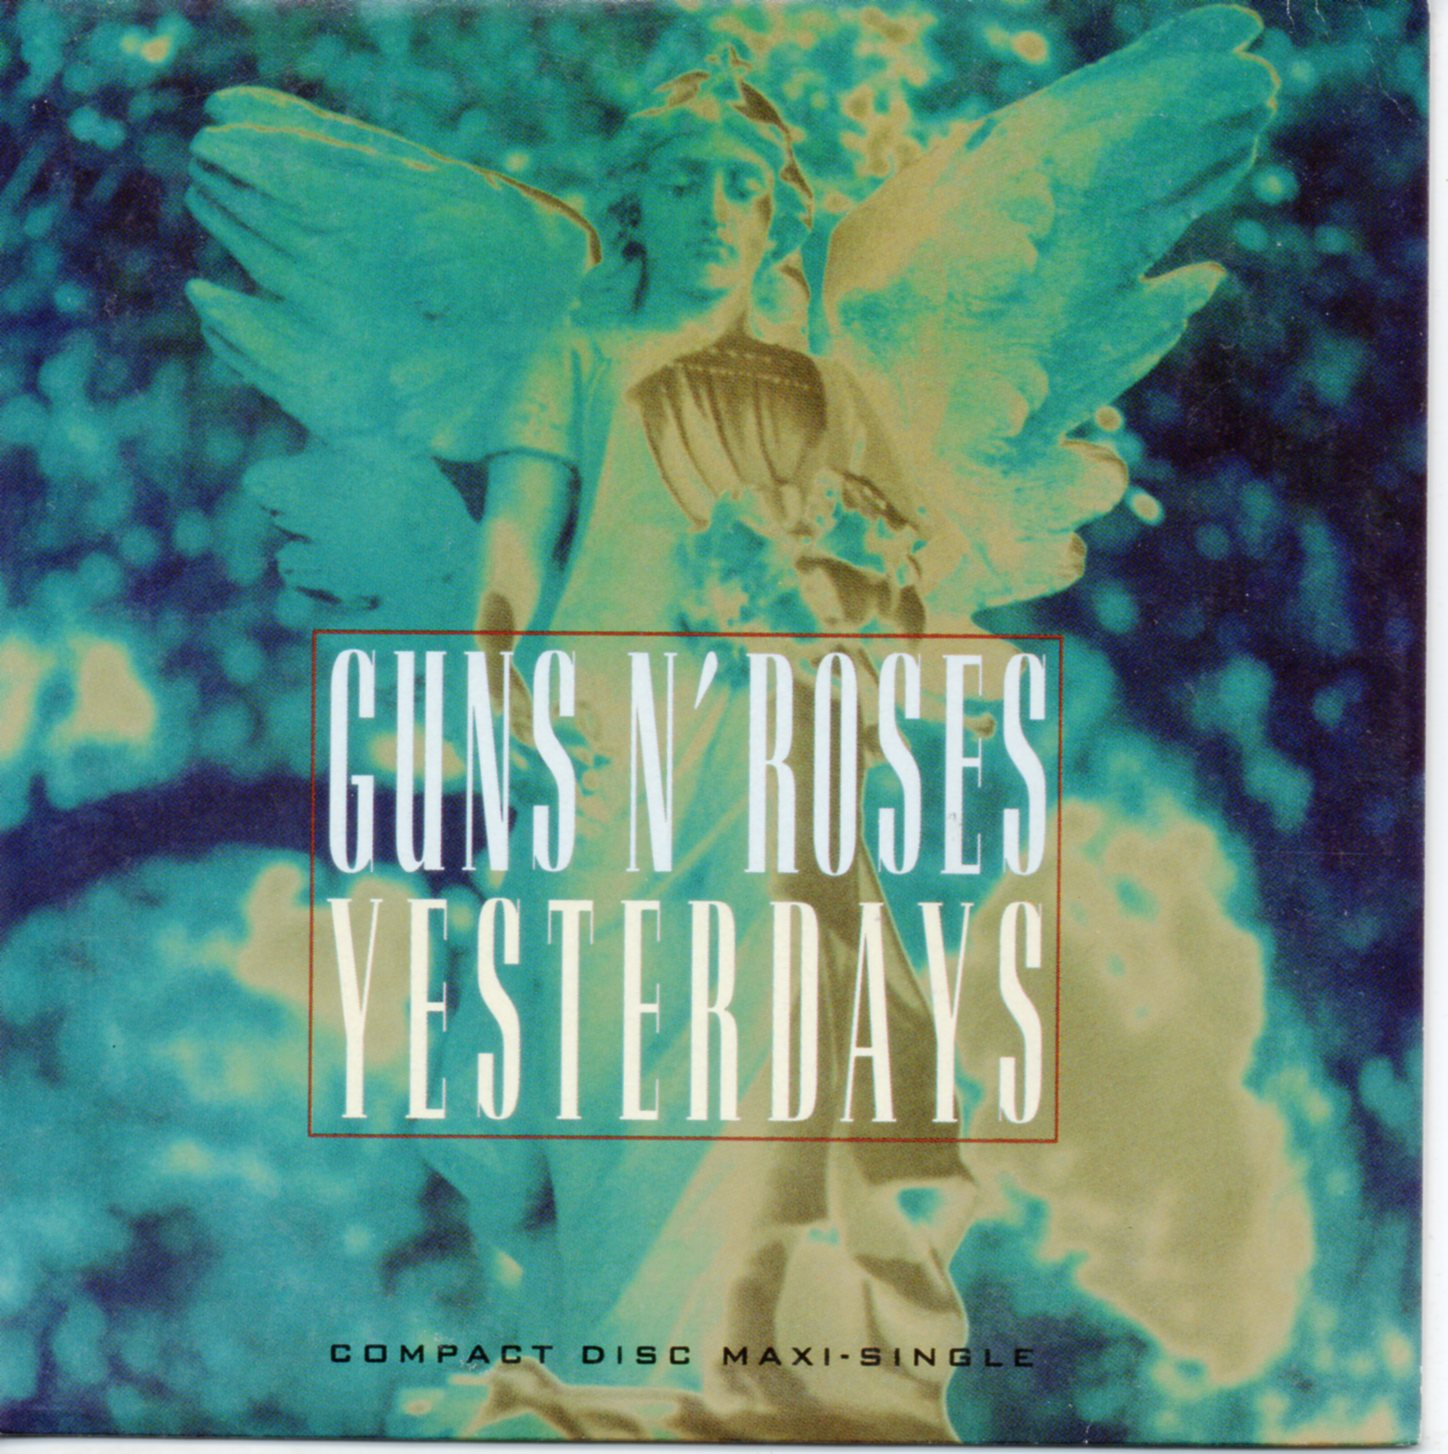 GUNS N' ROSES - Yesterdays 2-track CARD SLEEVE - CD single